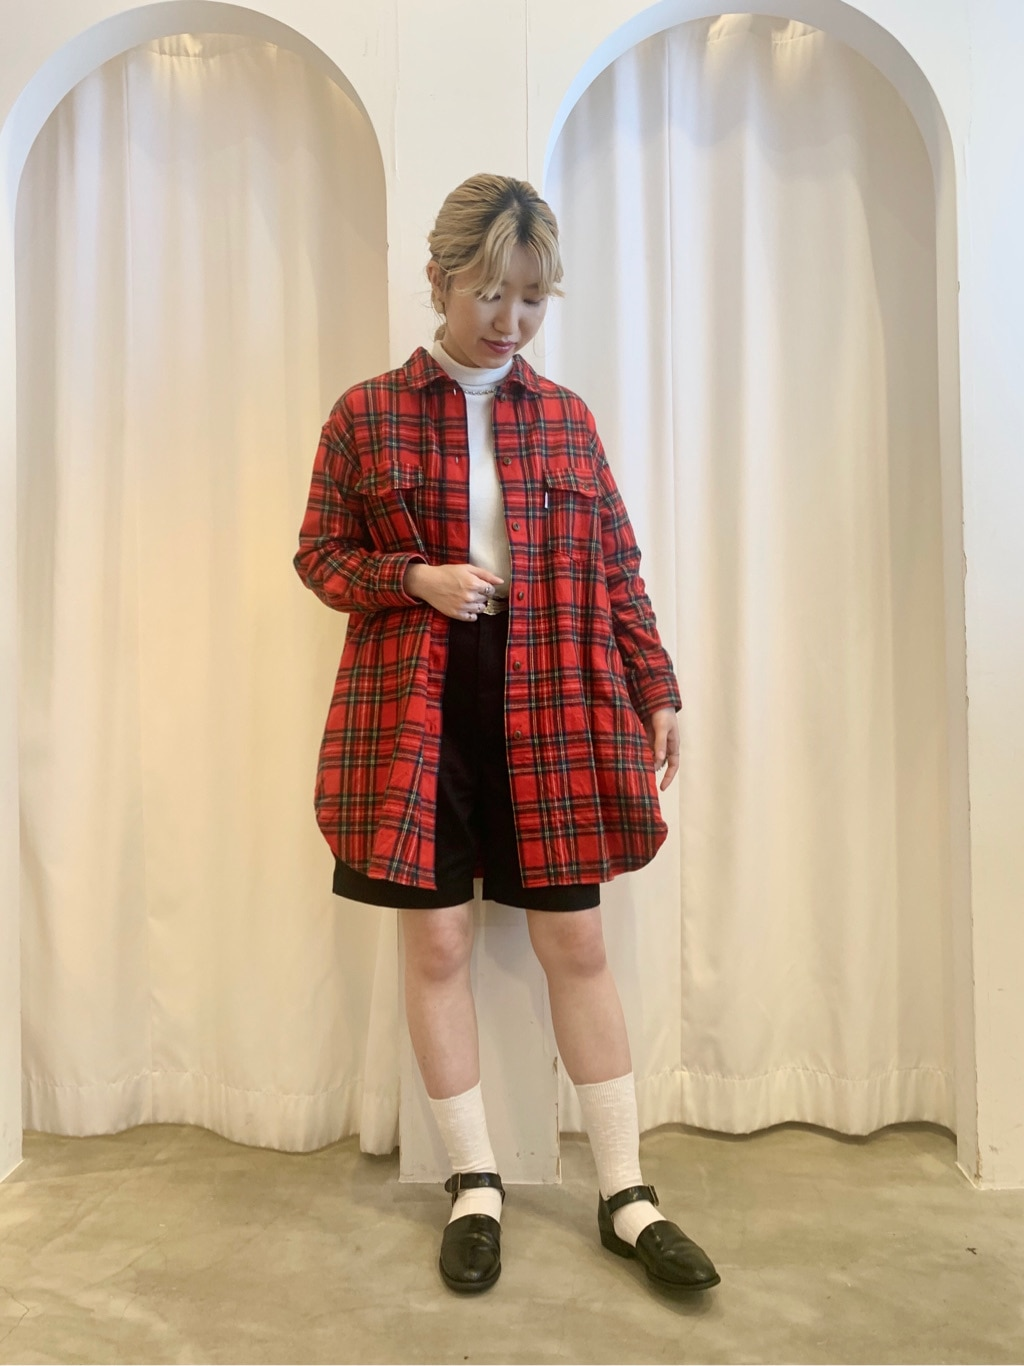 Dot and Stripes CHILD WOMAN ラフォーレ原宿 身長:160cm 2020.10.24